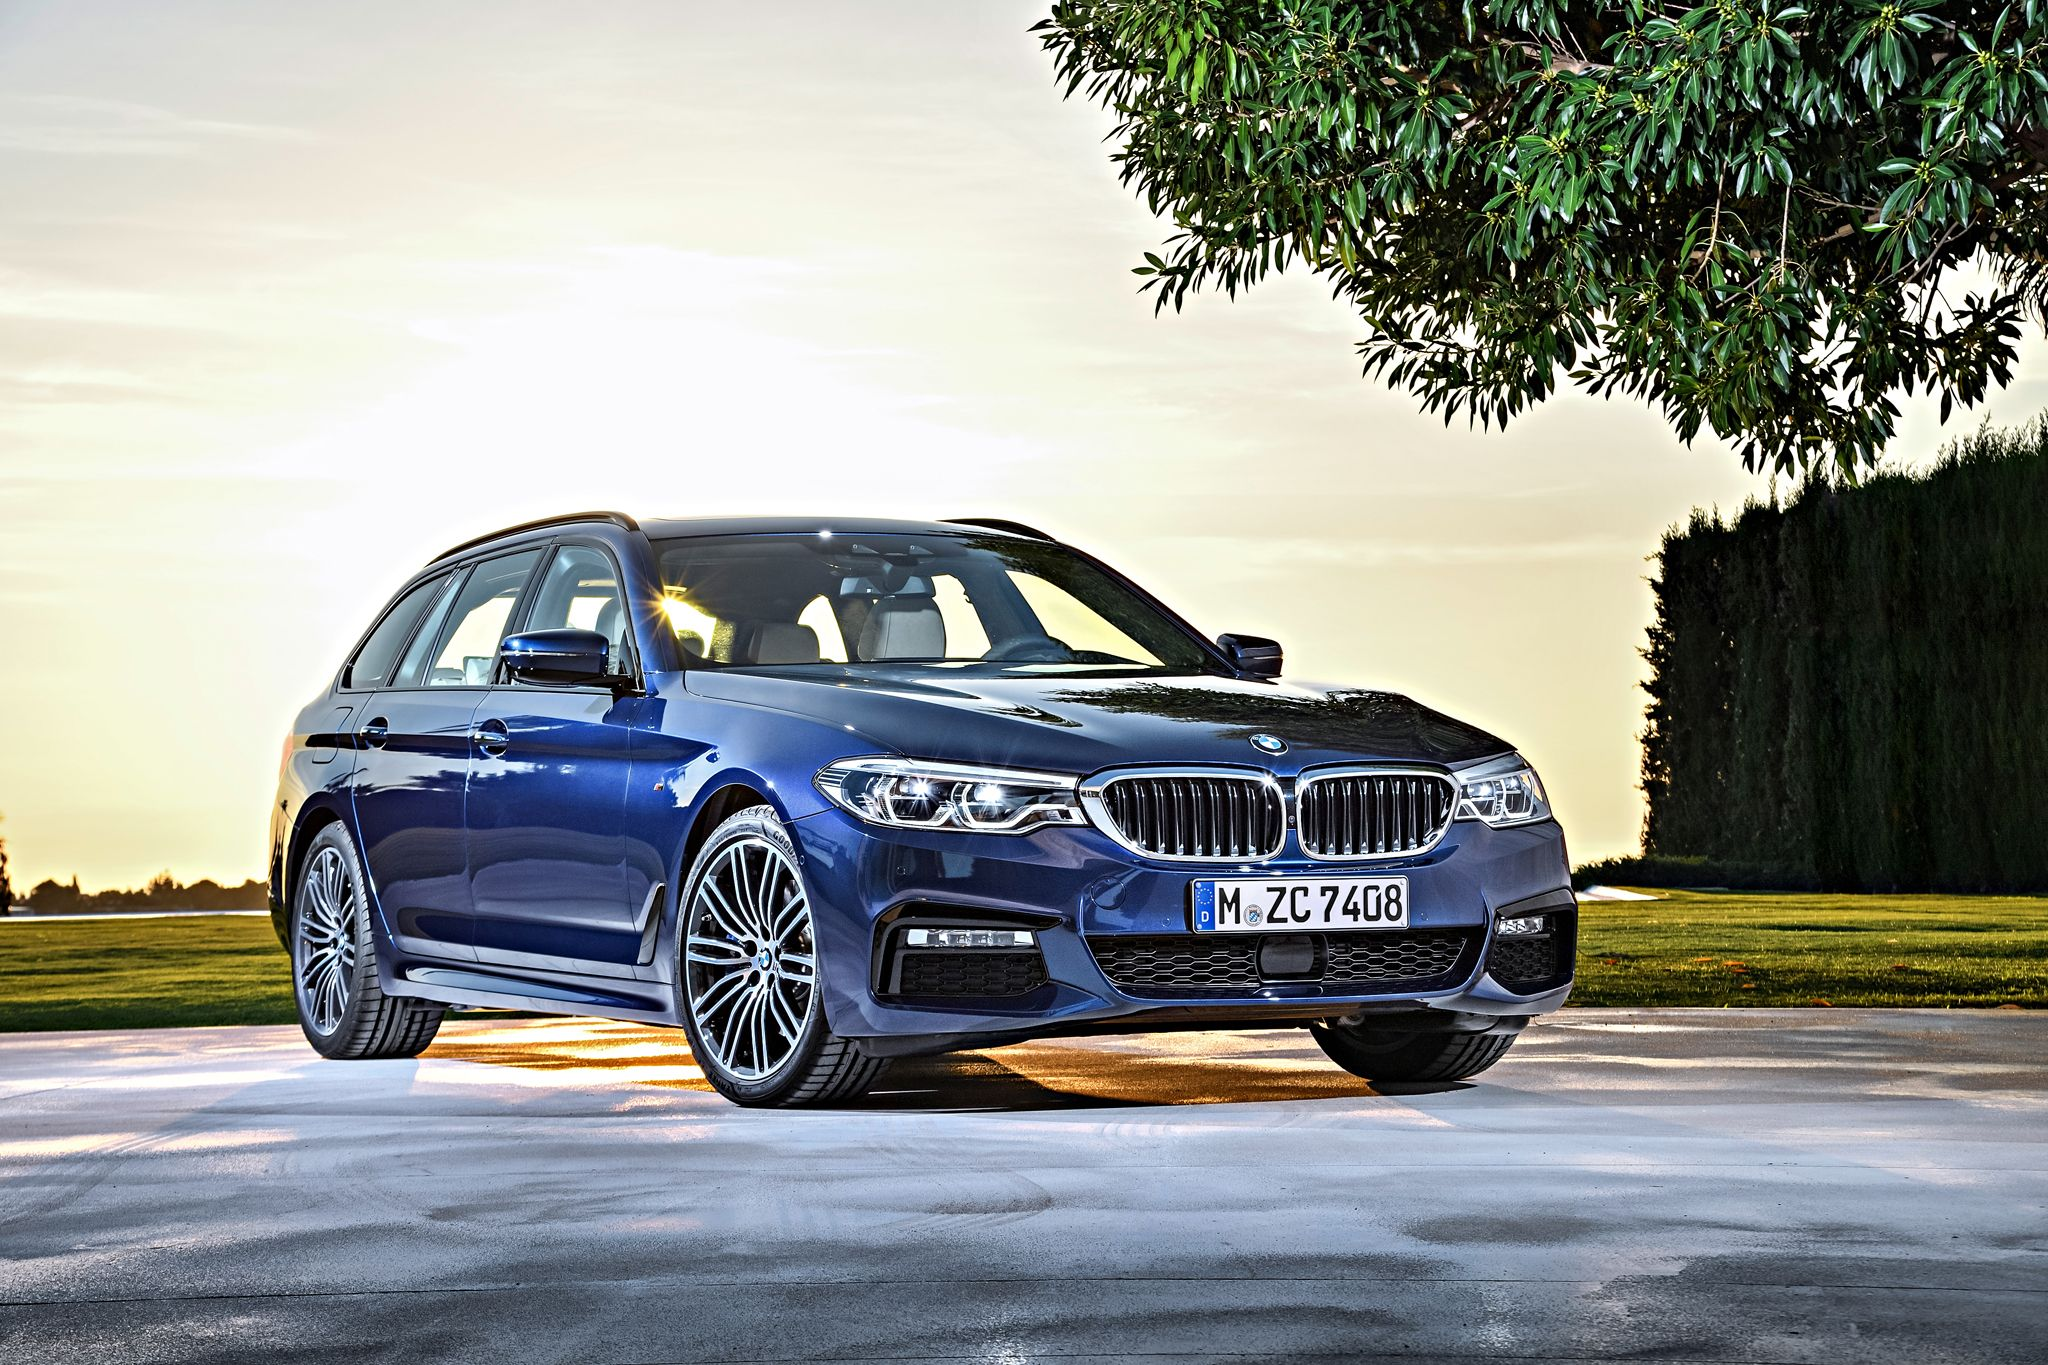 2k17 The New Bmw G31 530d Touring Mpackage Drivingscenes